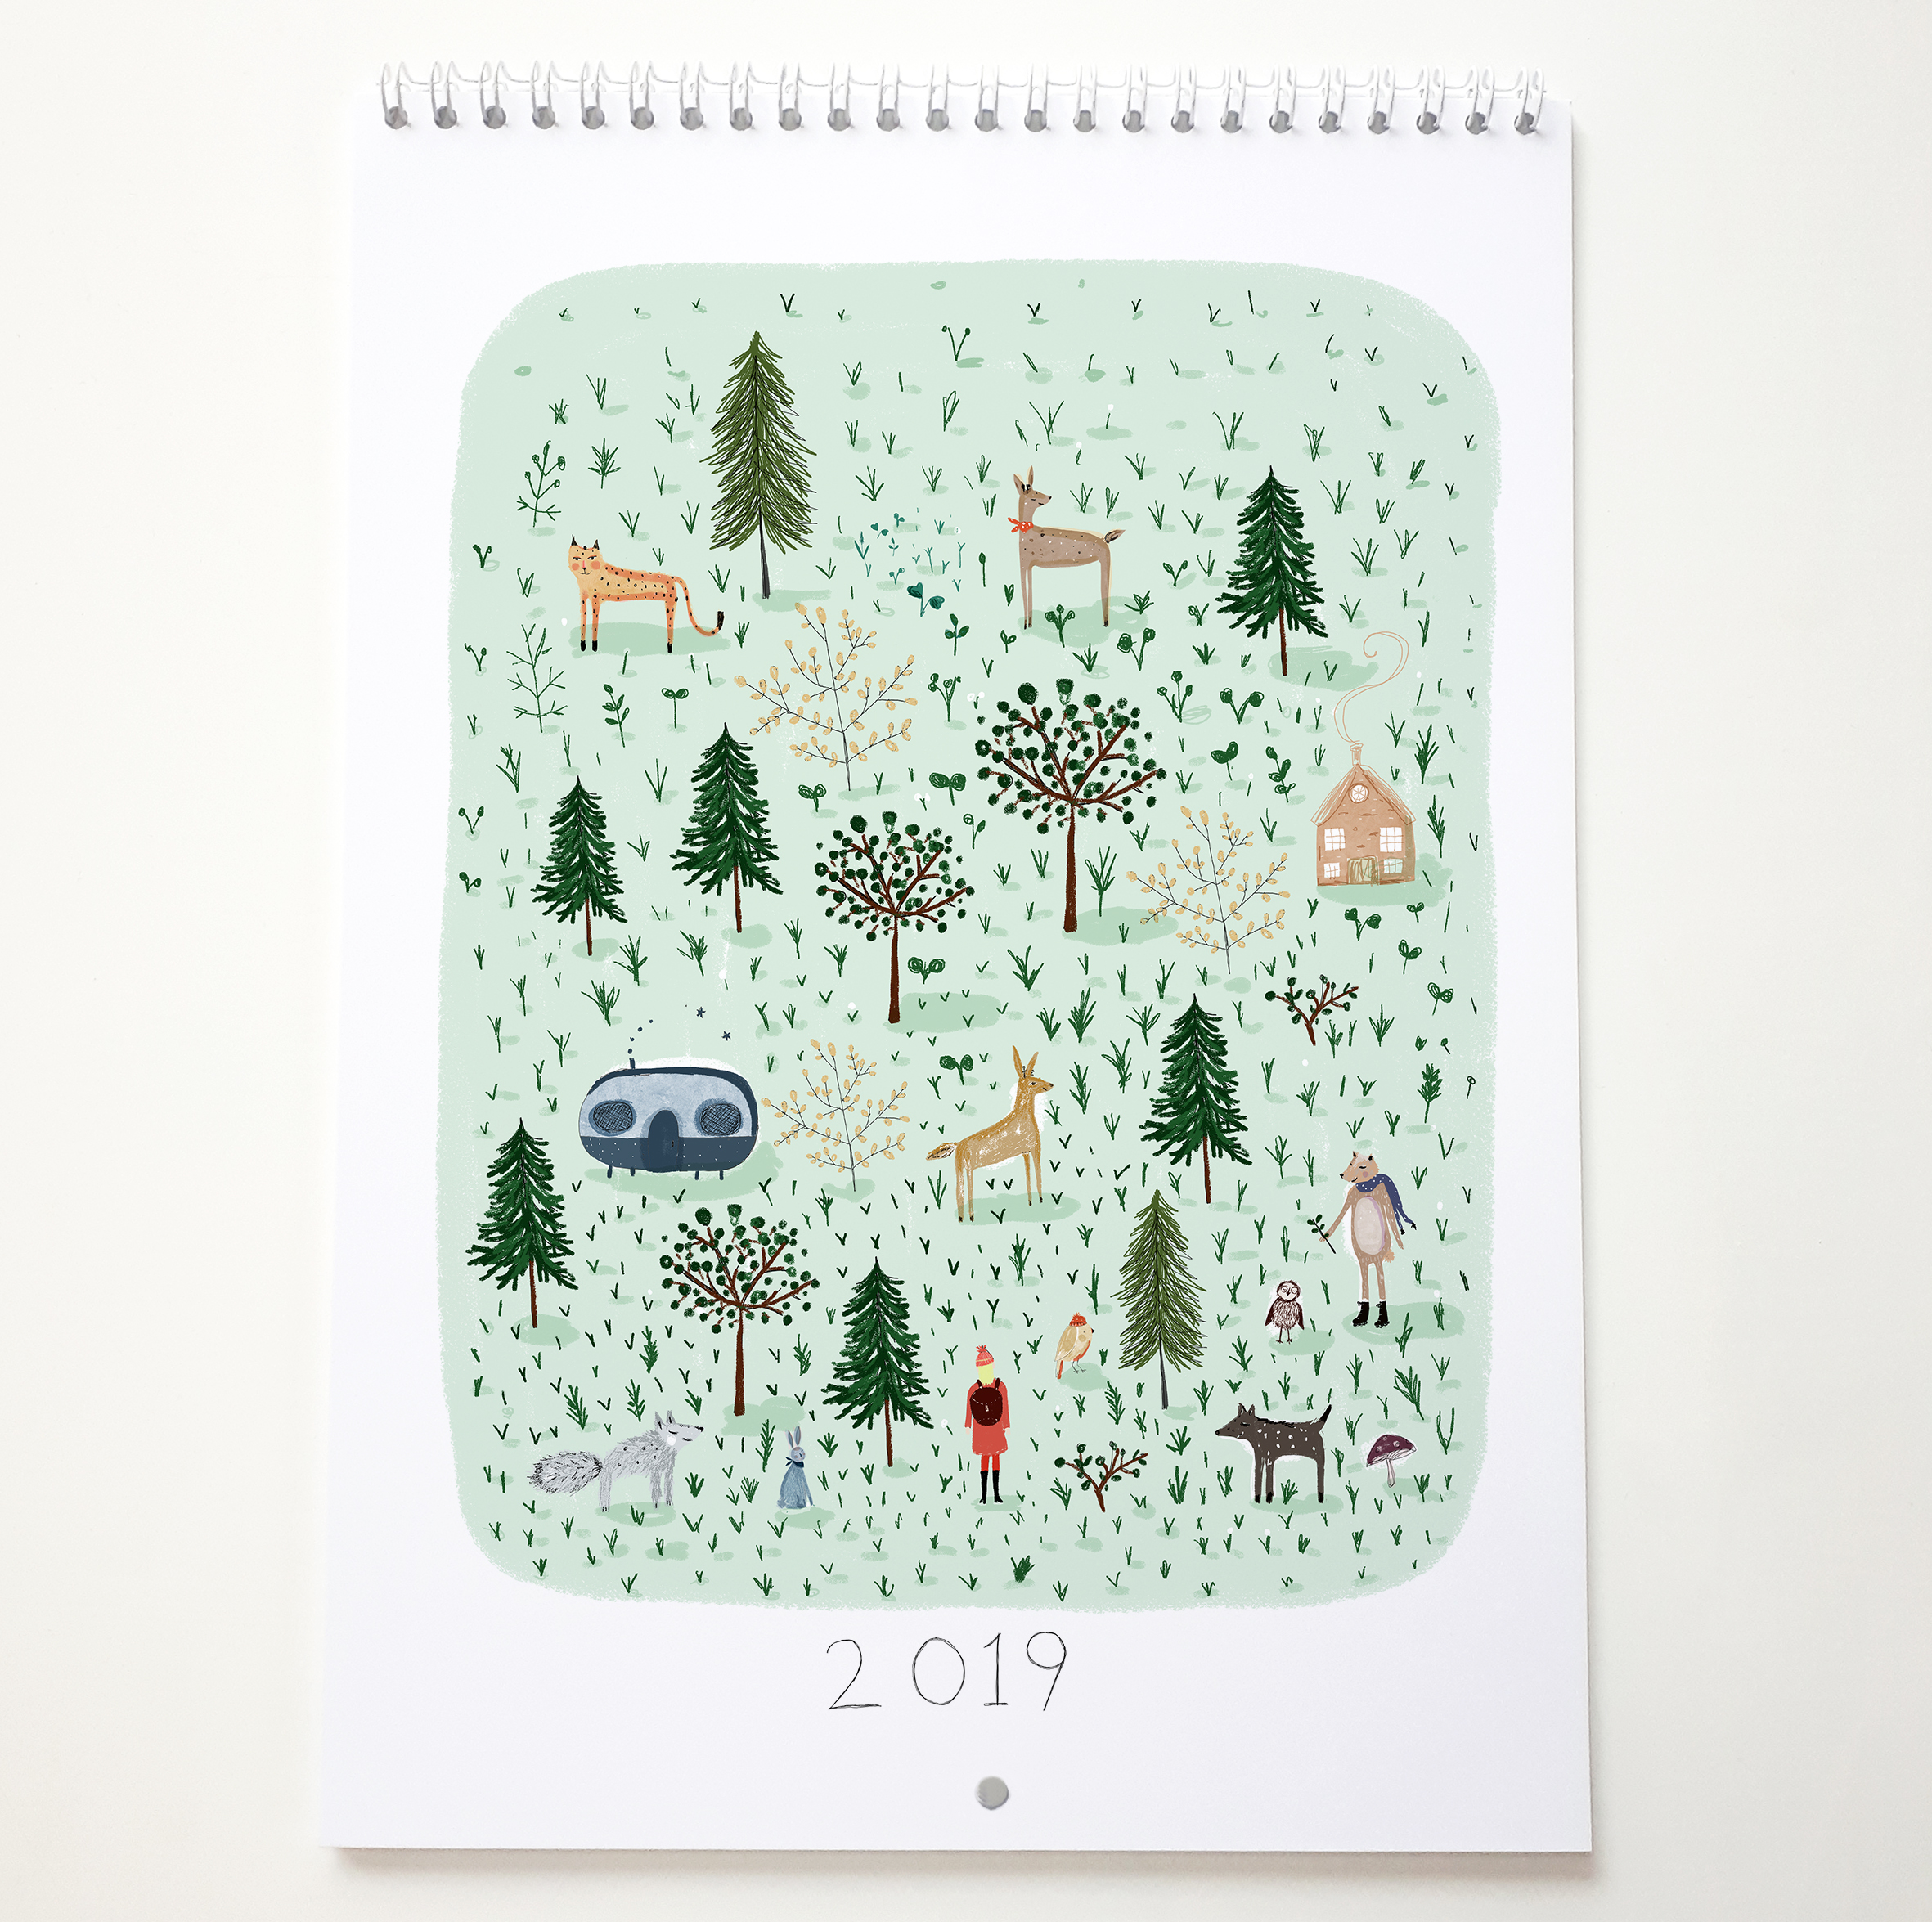 Susse Collection 2019 Calendar-1 .jpg